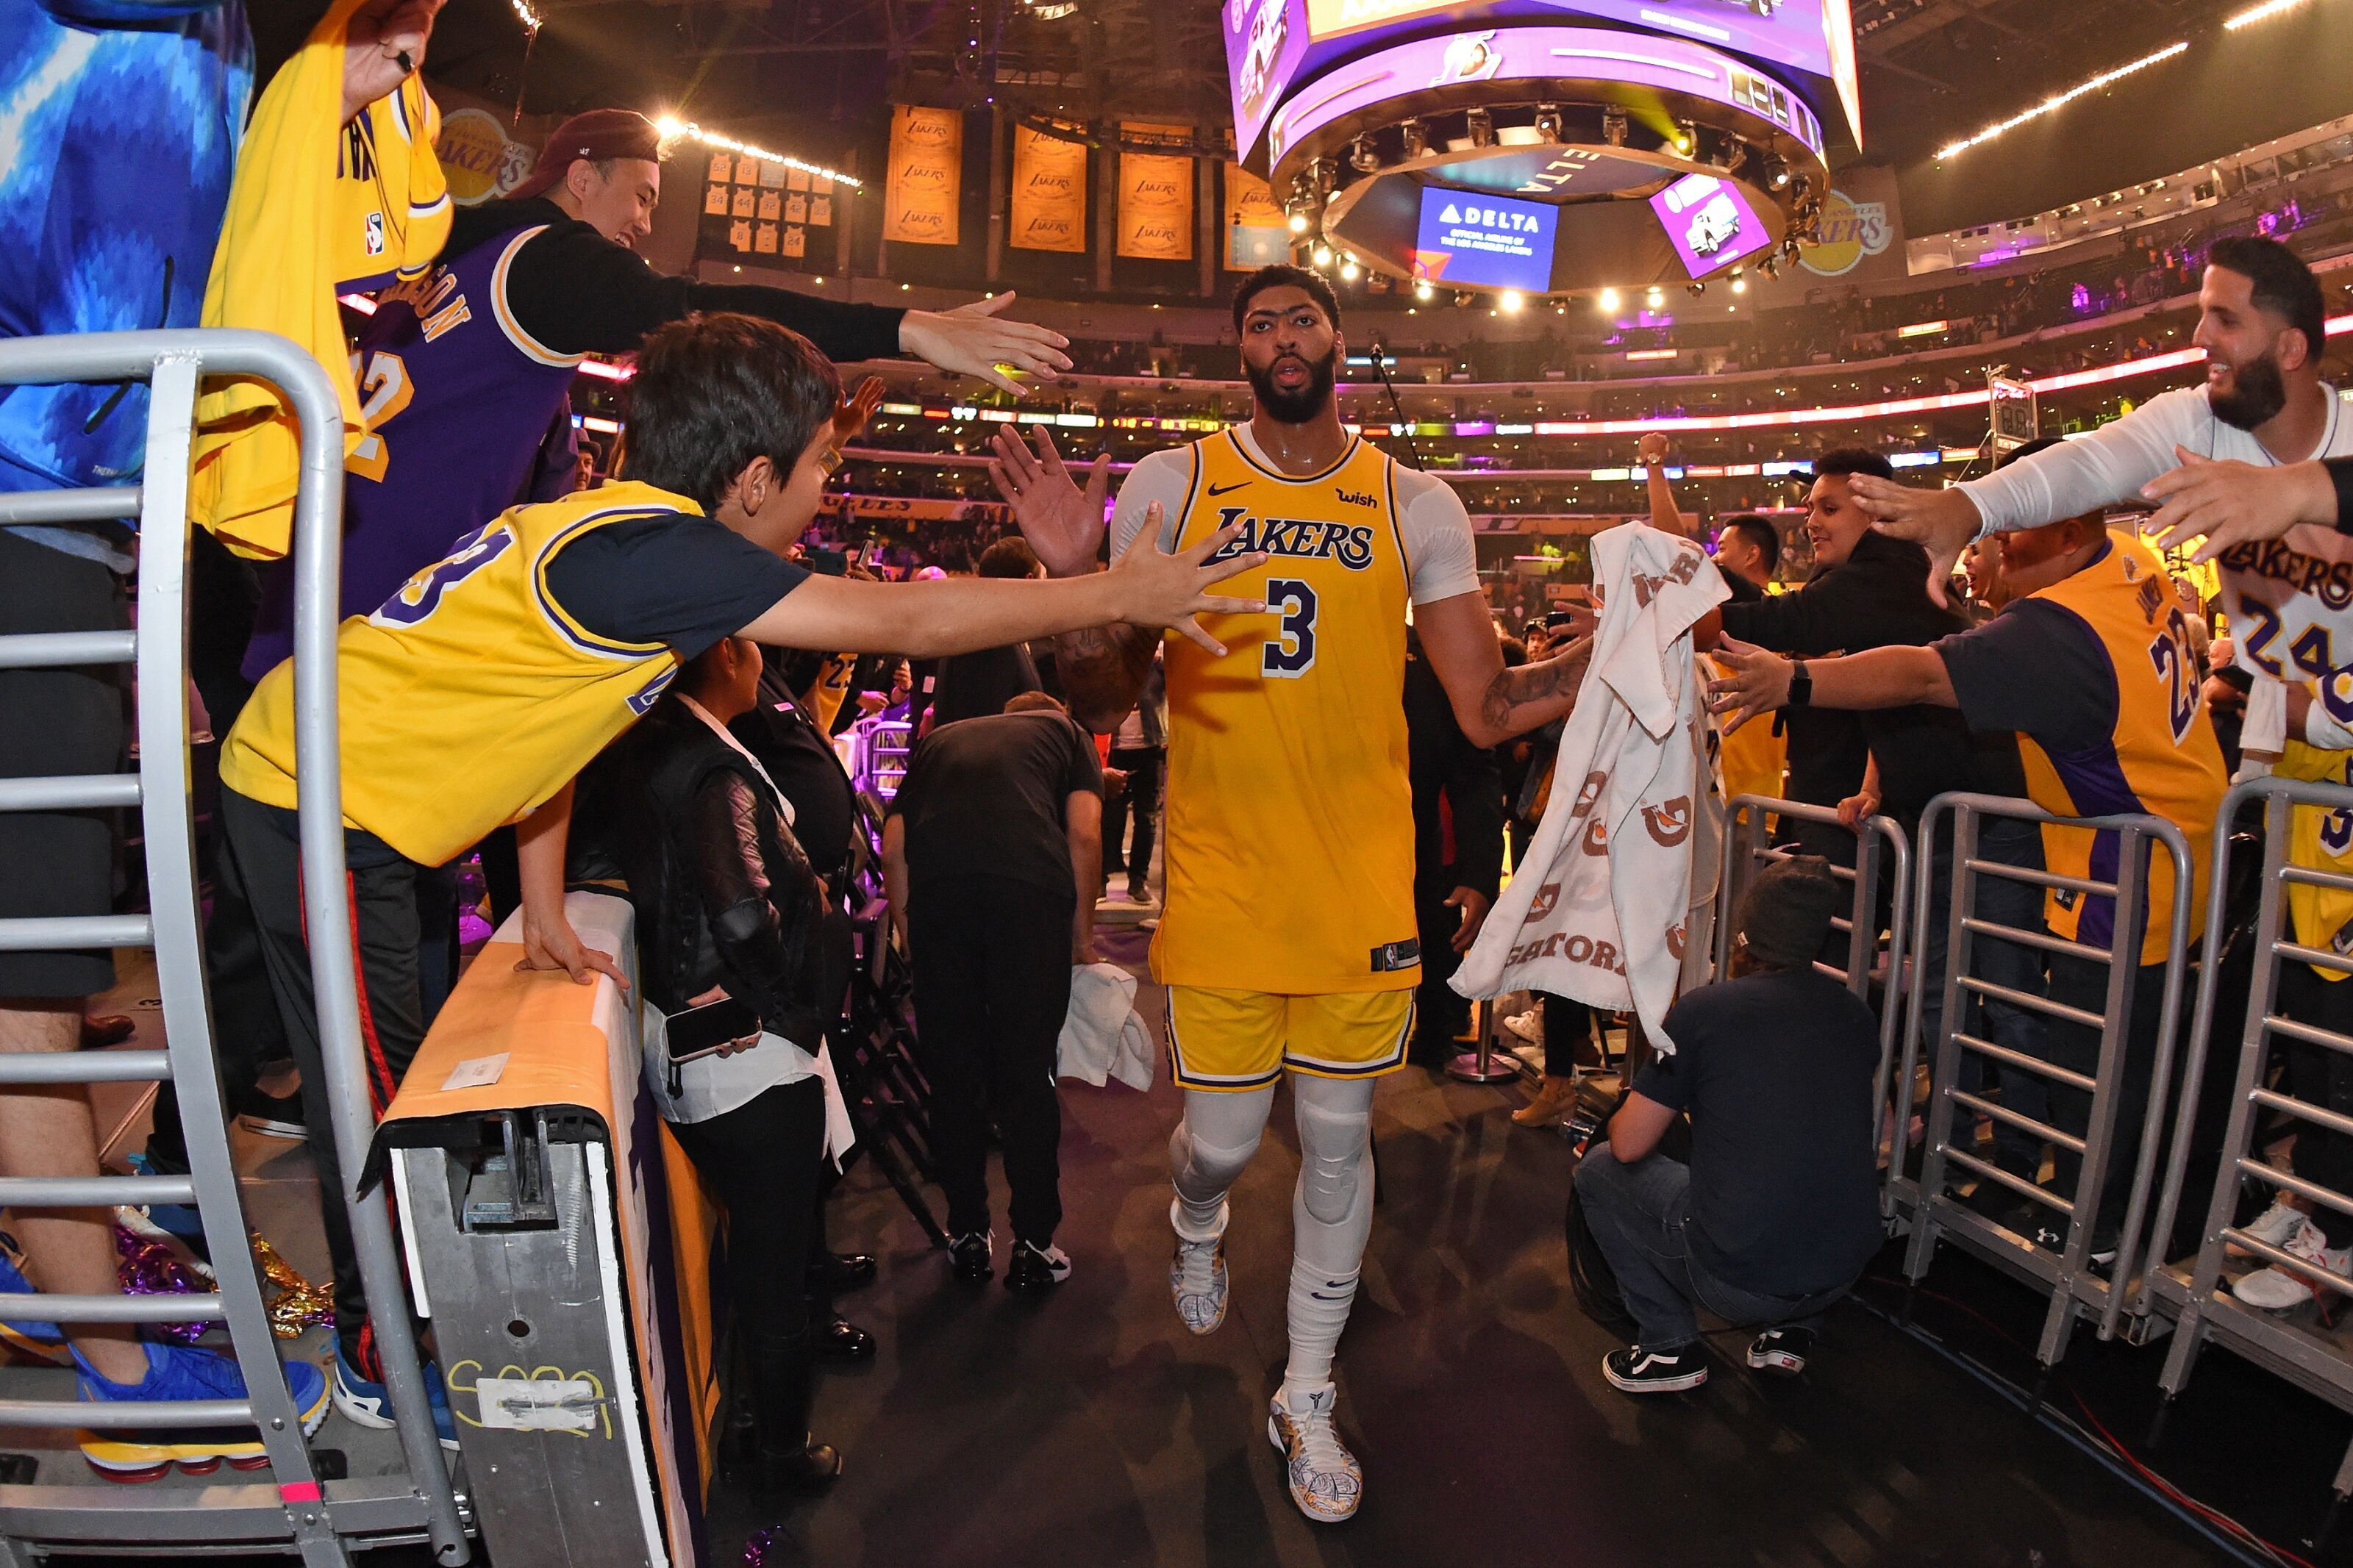 Los Angeles Lakers have the best fans in the NBA